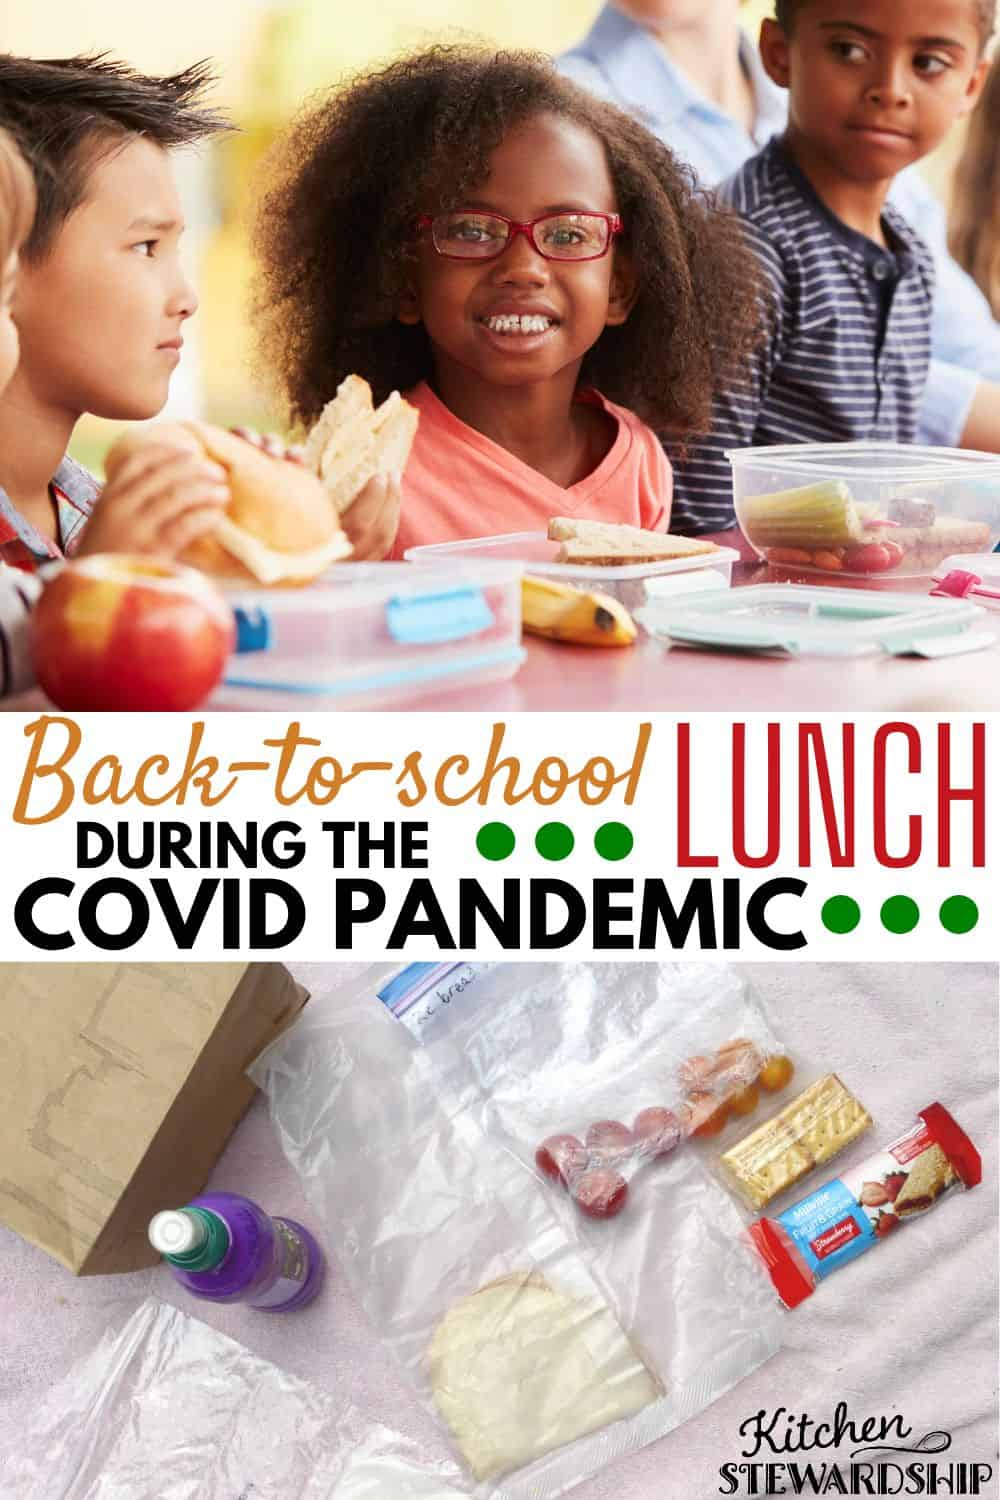 back-to-school lunch during COVID pandemic